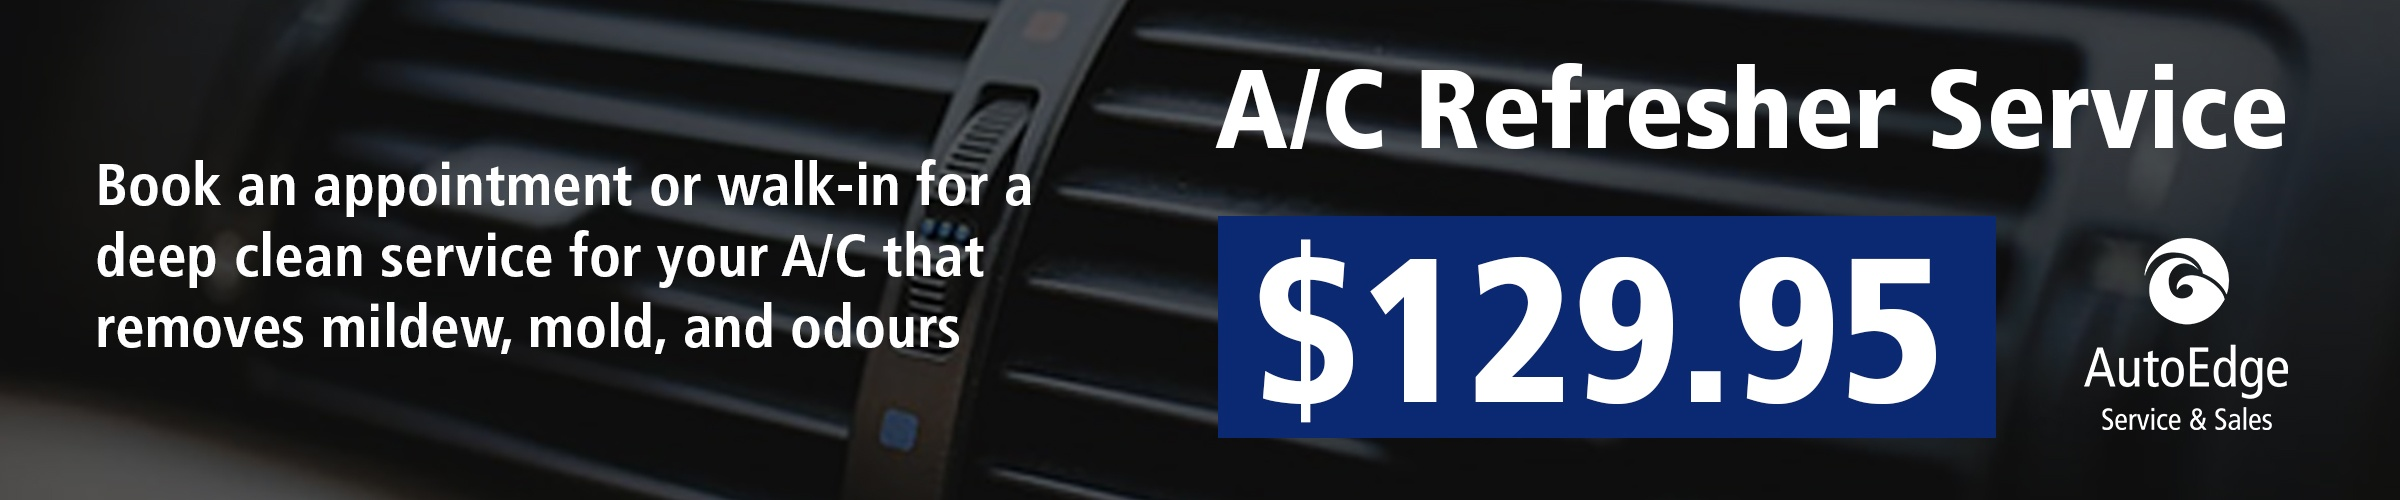 A/C Refresher Service: $129.95